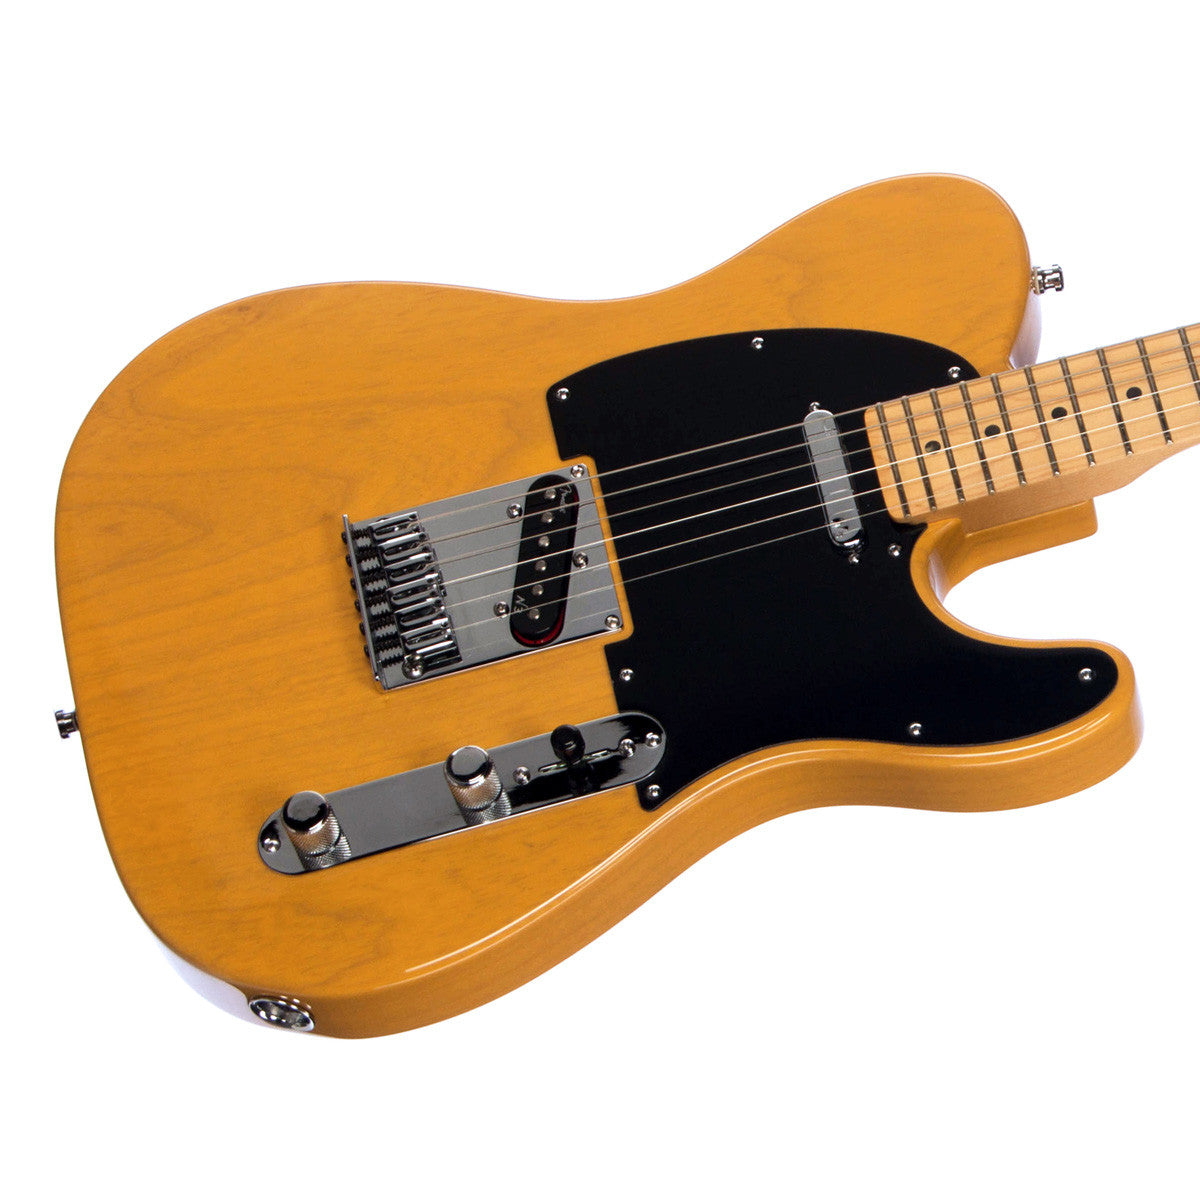 fender_american_deluxe_telecaster_am_dlx_tele_butterscotch_blonde_maple_neck_electric_guitar_0119502750_frontbody american deluxe telecaster wiring diagrams dolgular com fender american deluxe telecaster wiring diagram at couponss.co